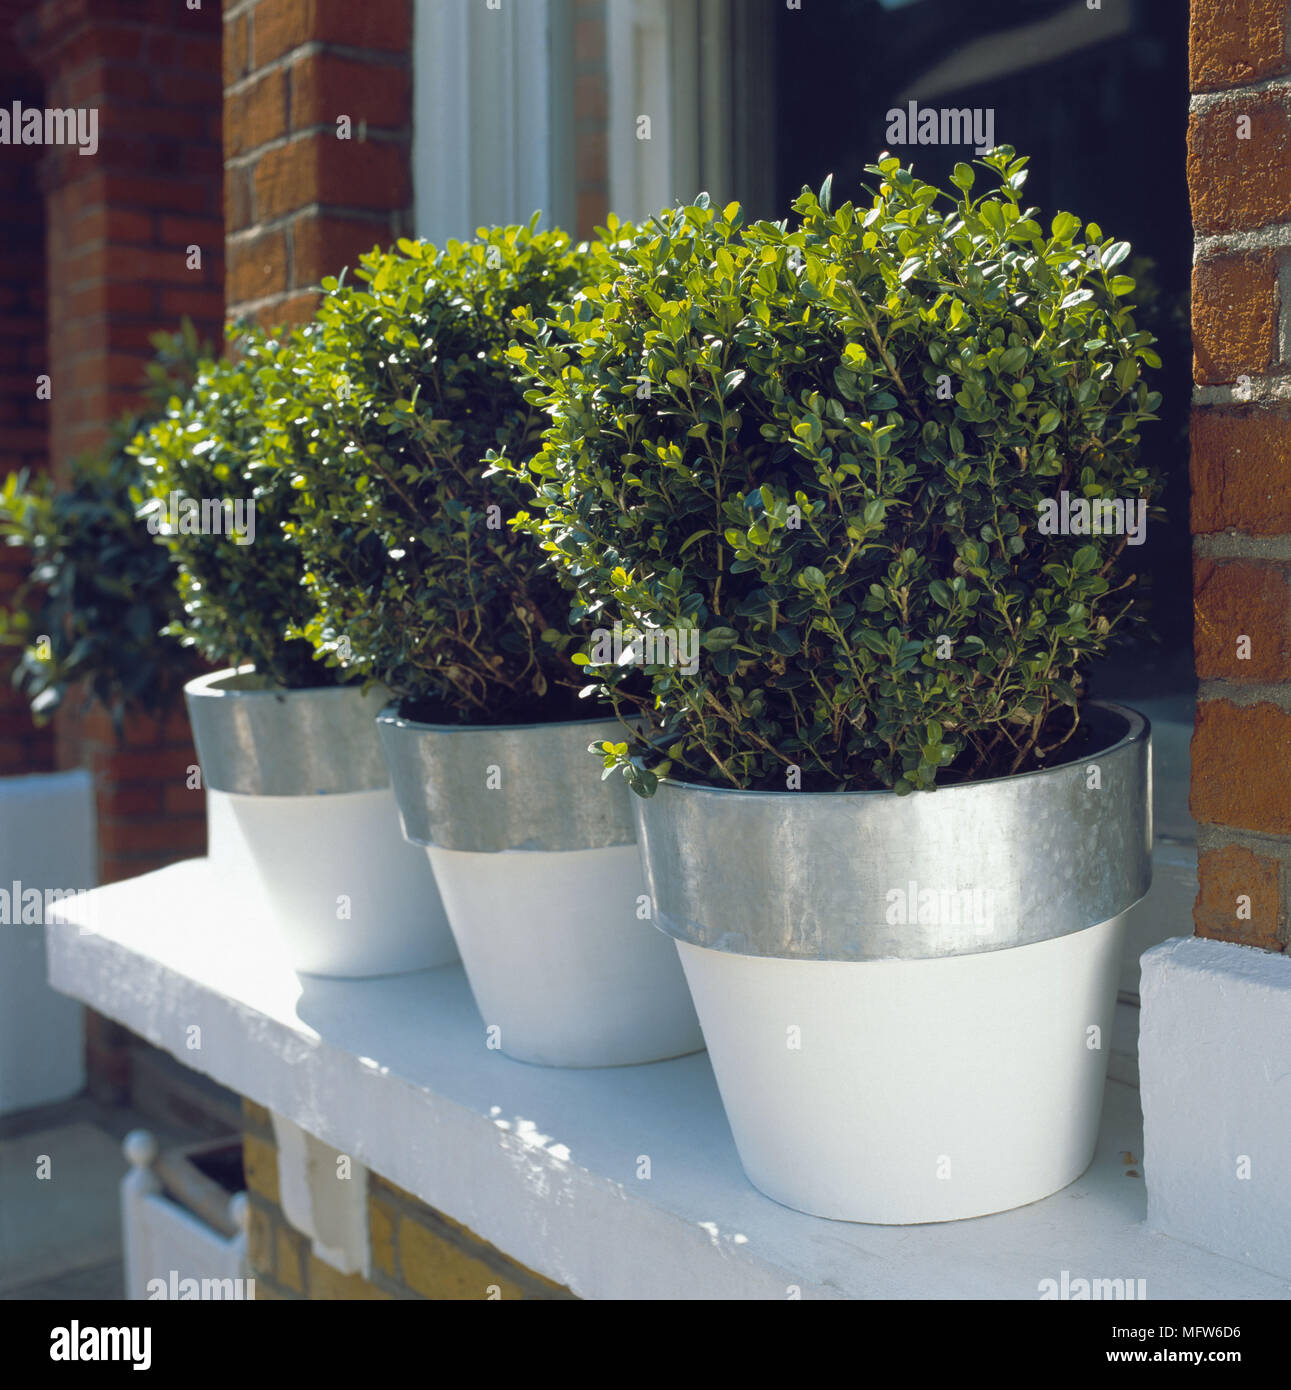 A Detail Of An Exterior Window Sill Three Buxus Sempervirens